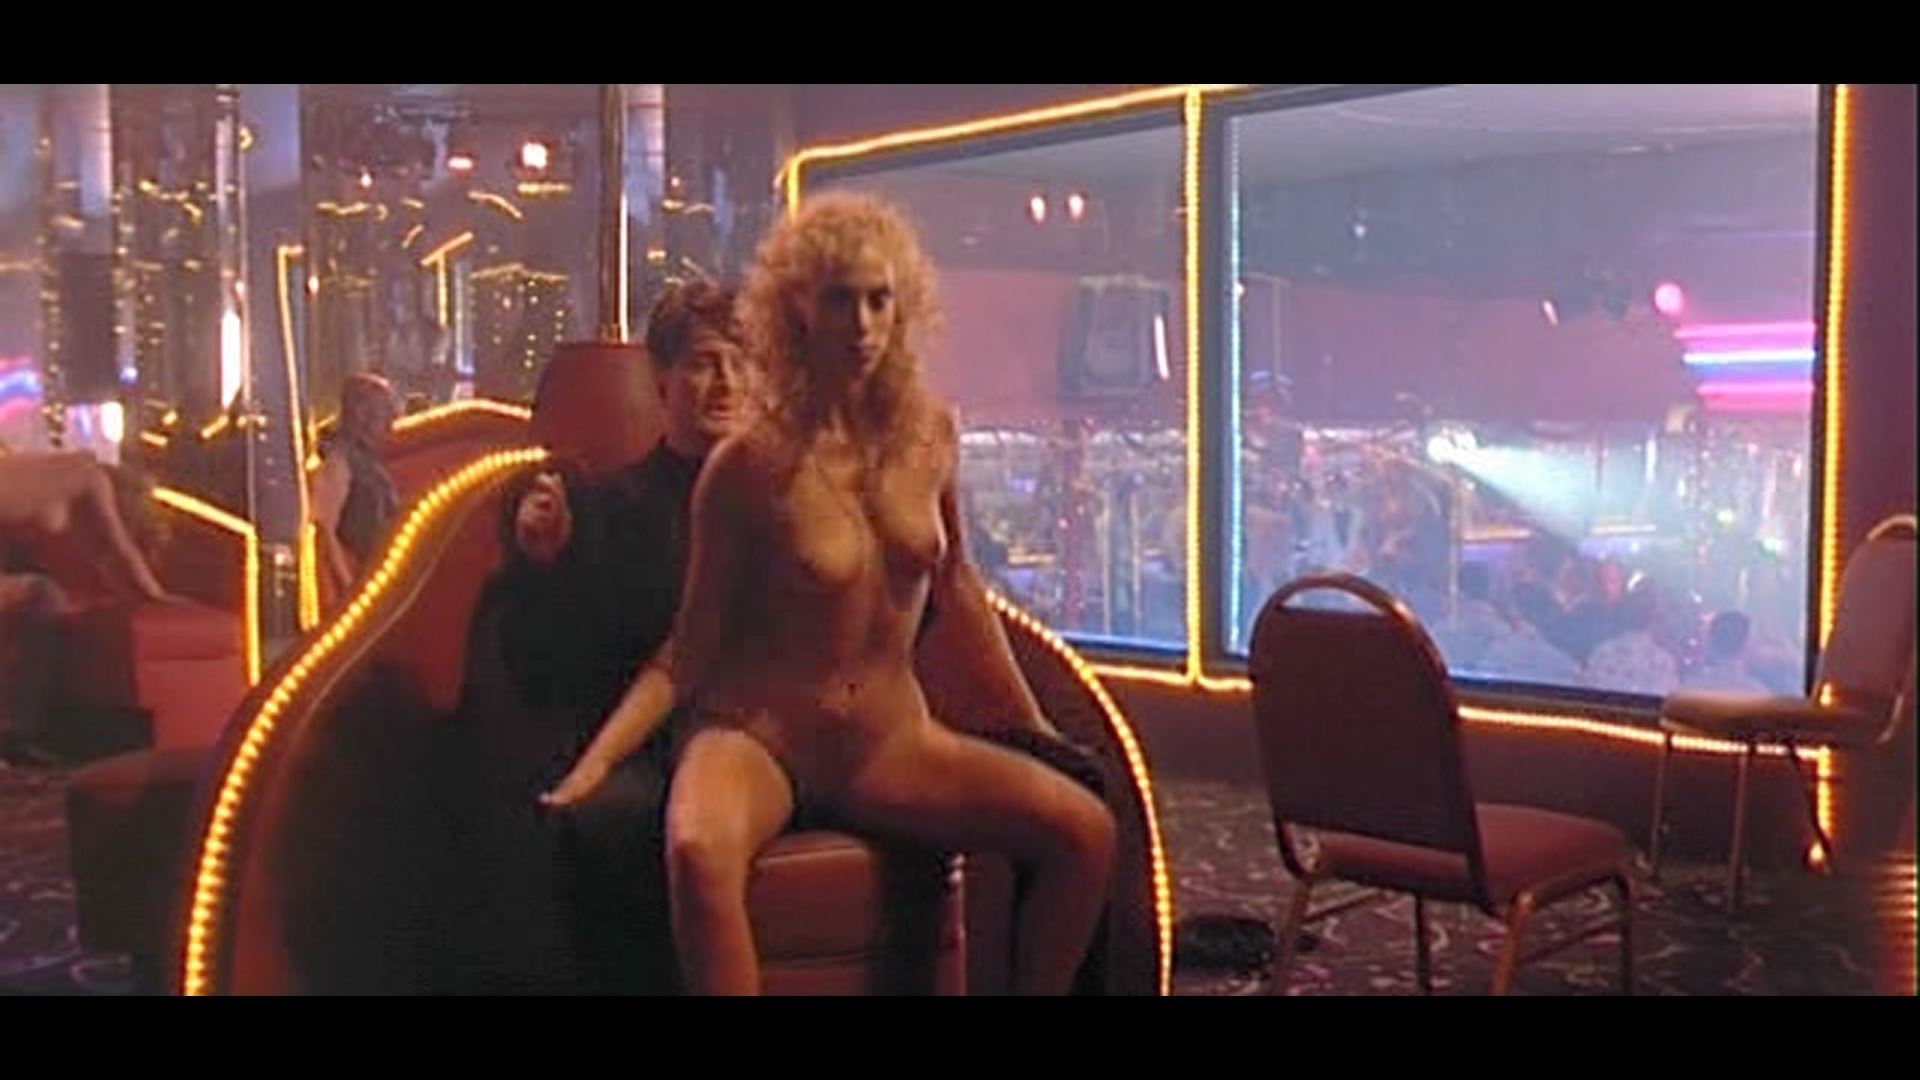 Elizabeth berkley nude movie pics phrase and